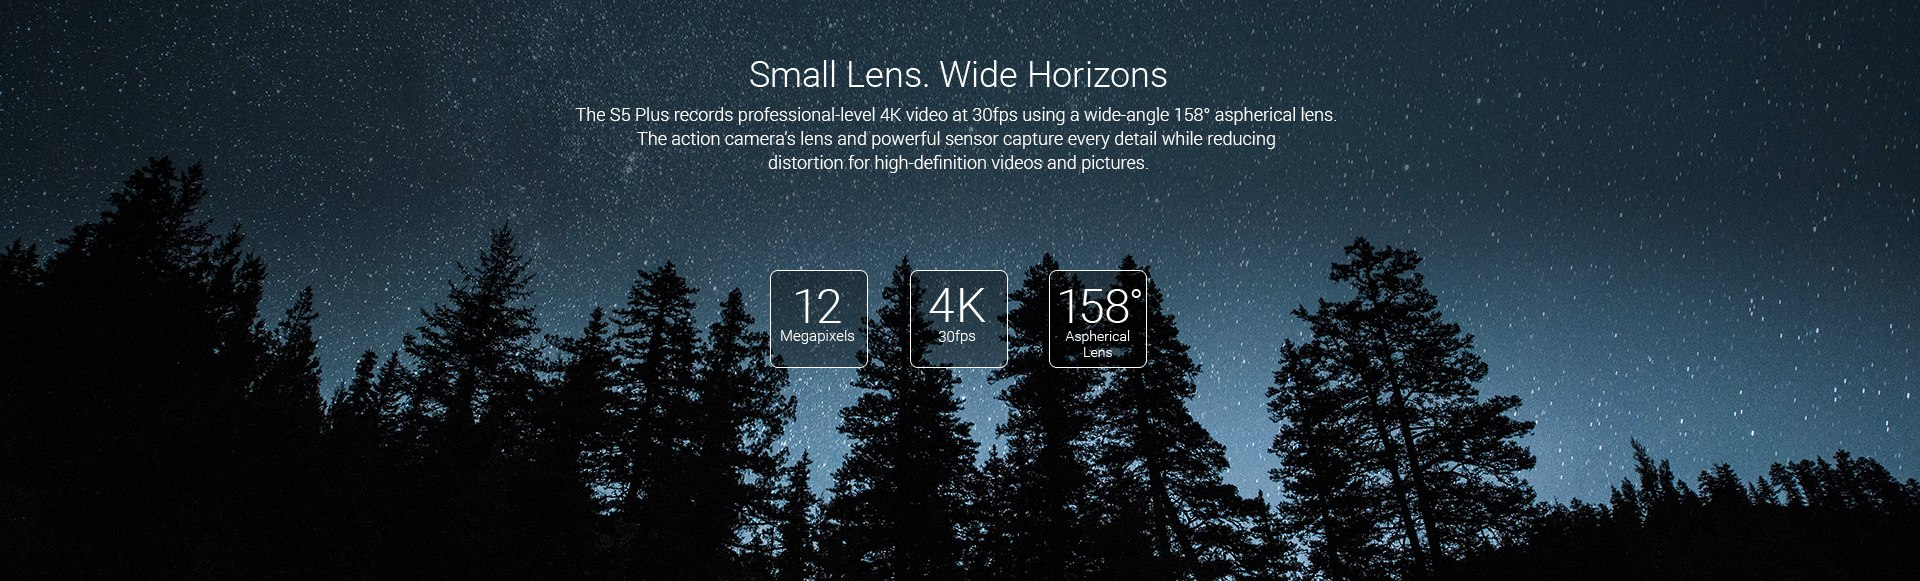 12 Megapixels, 4K, 30fps, 158 degree